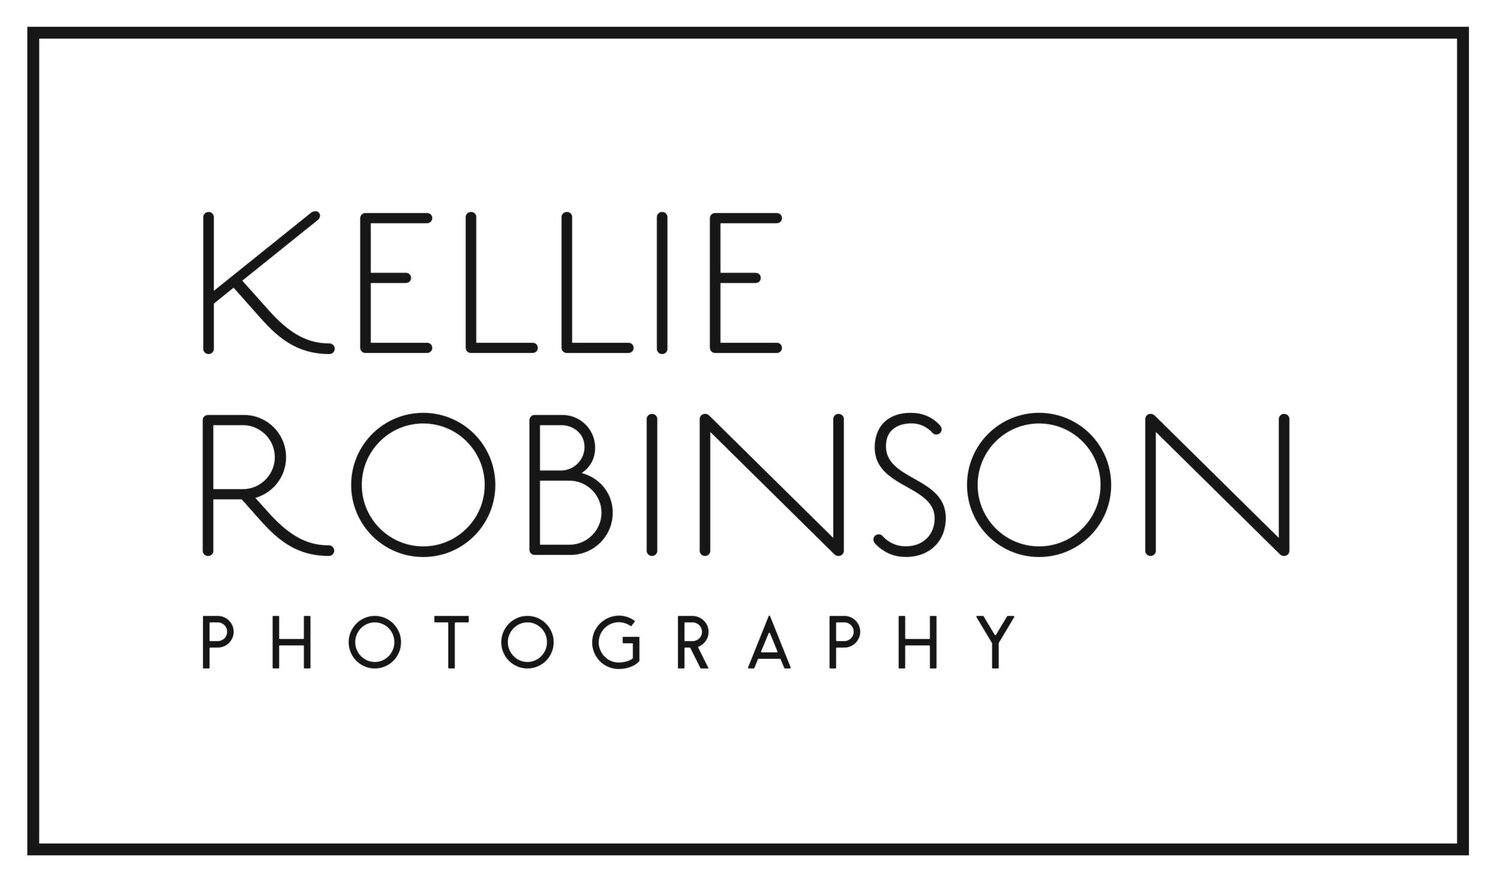 Kellie Robinson Photography